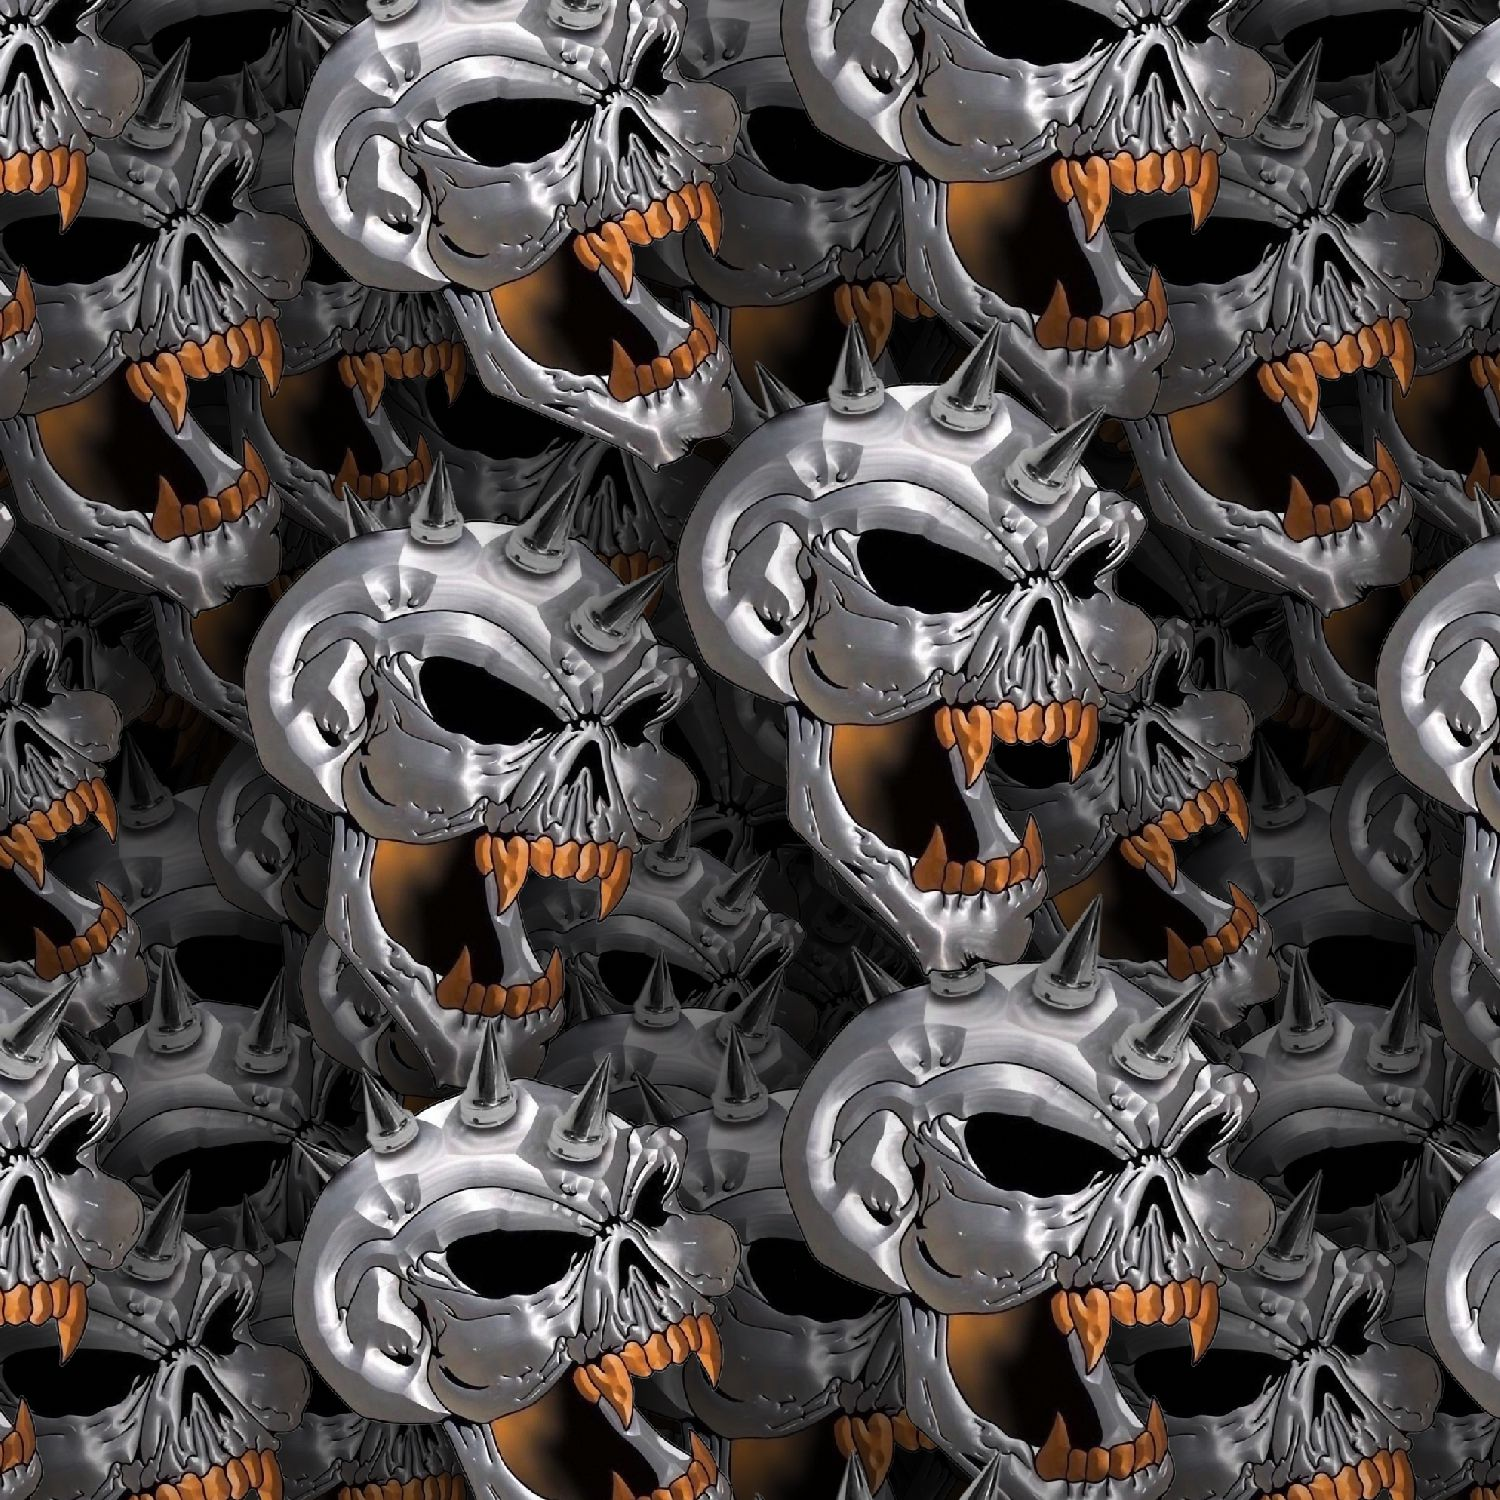 Chrome Spike Skulls